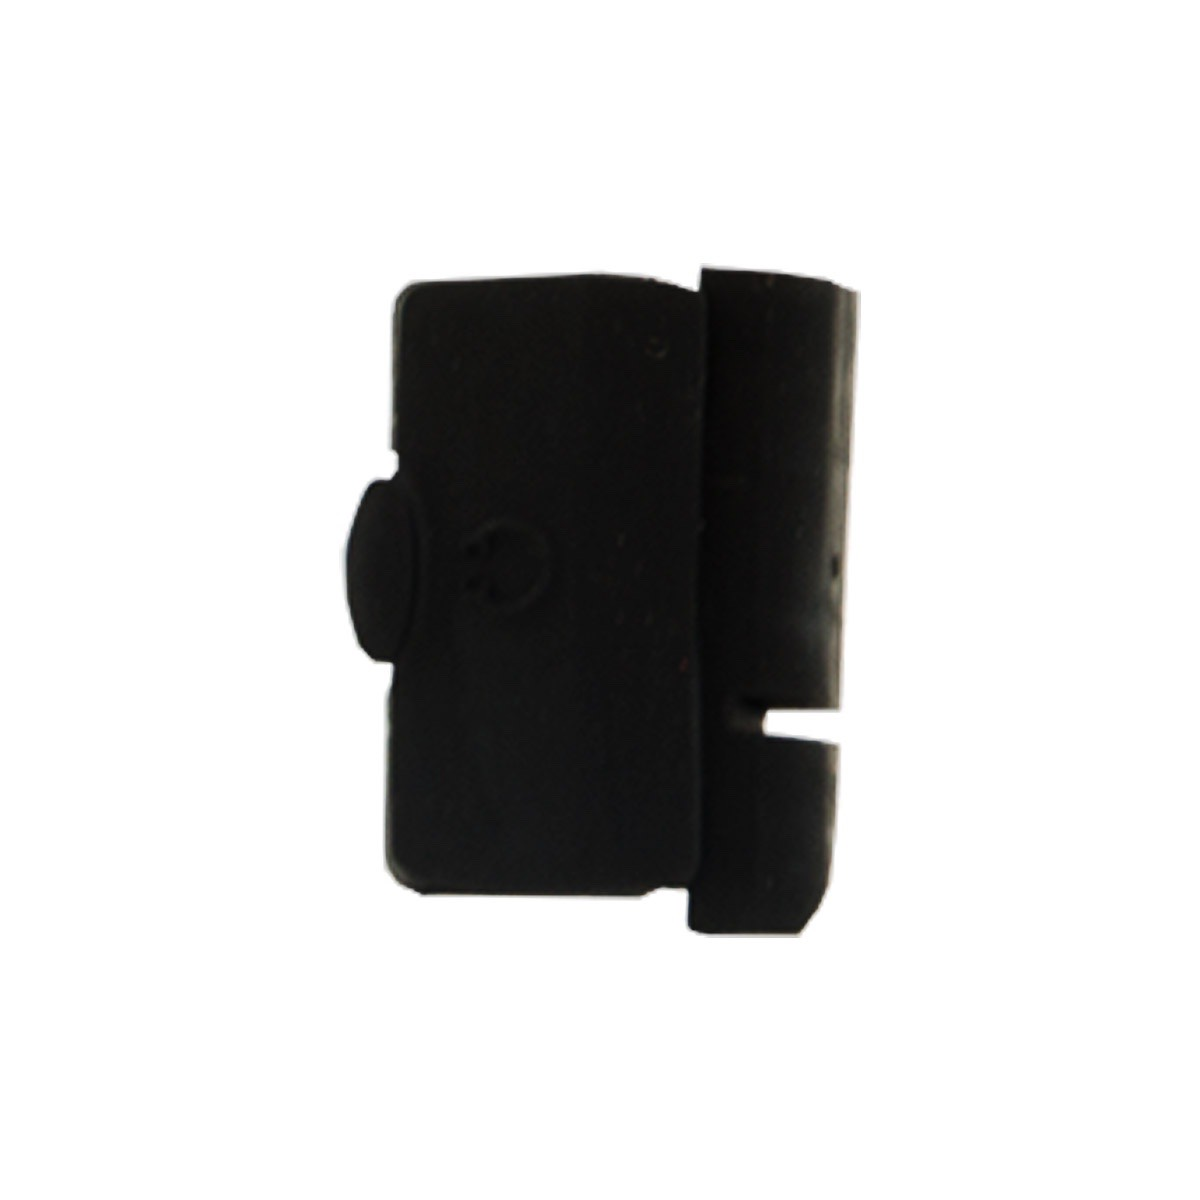 0703-0149, Headphone Socket Cover for X-TERRA Series